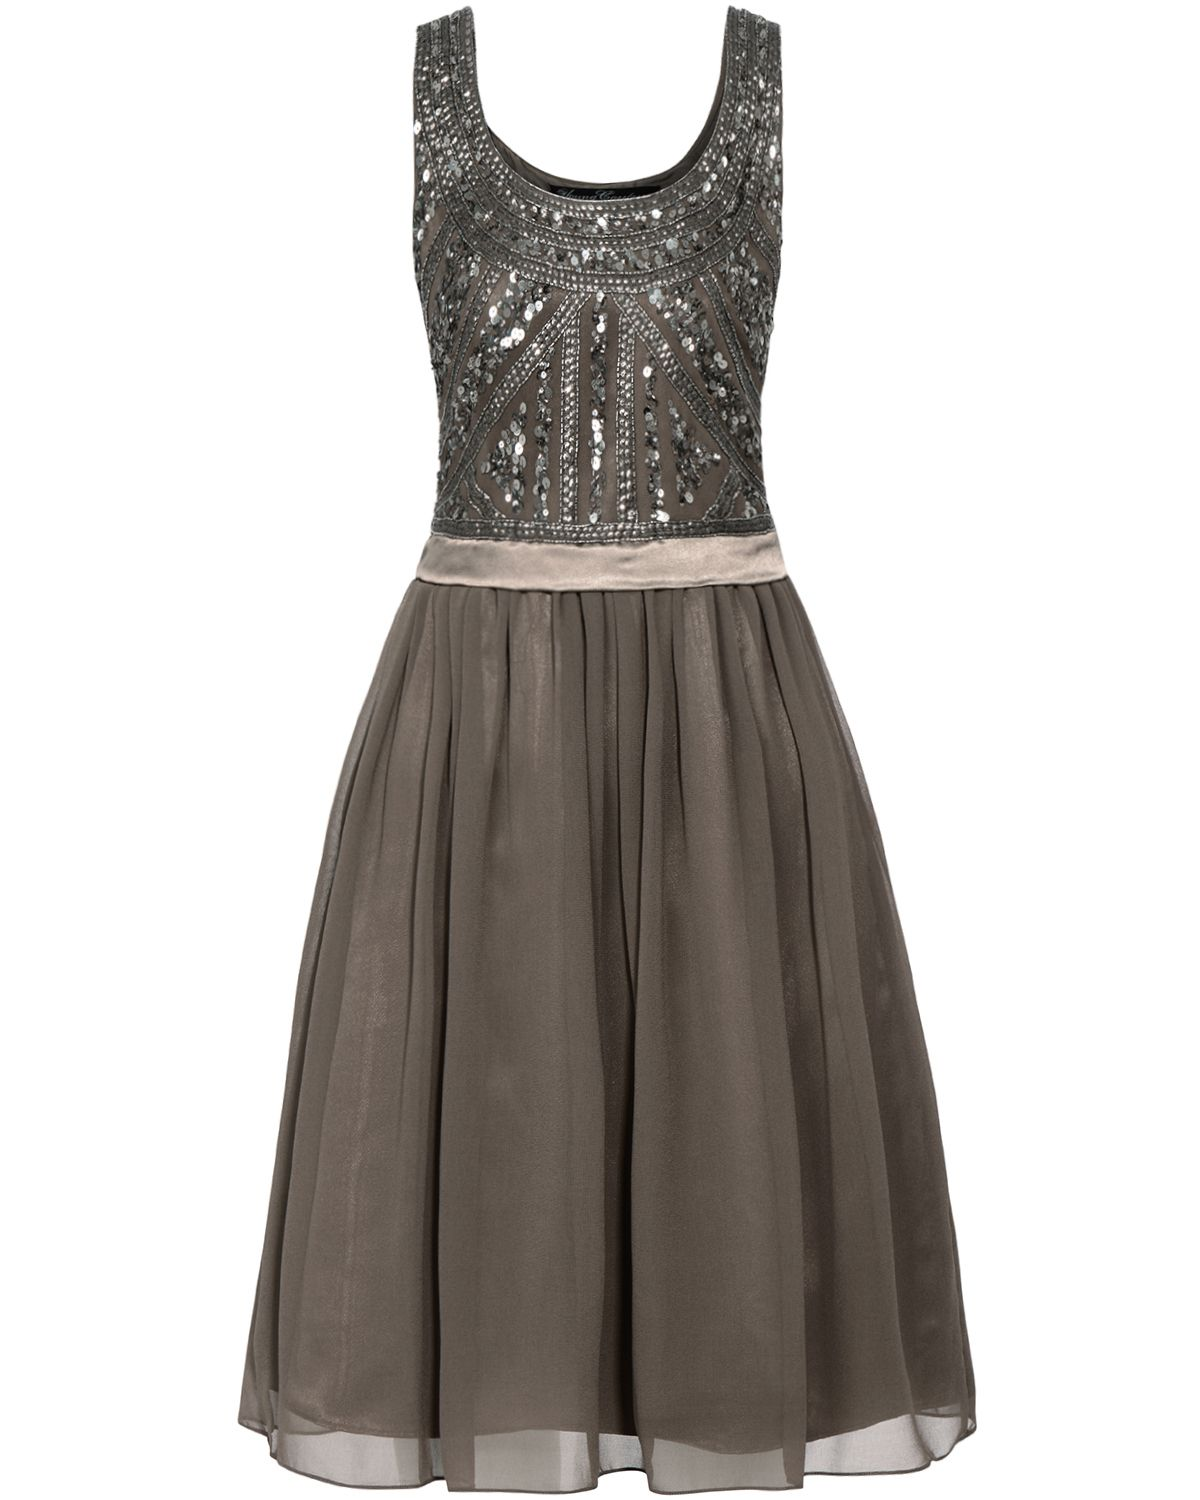 YOUNG COUTURE Cocktailkleid | LODENFREY | kleid. | Pinterest ...